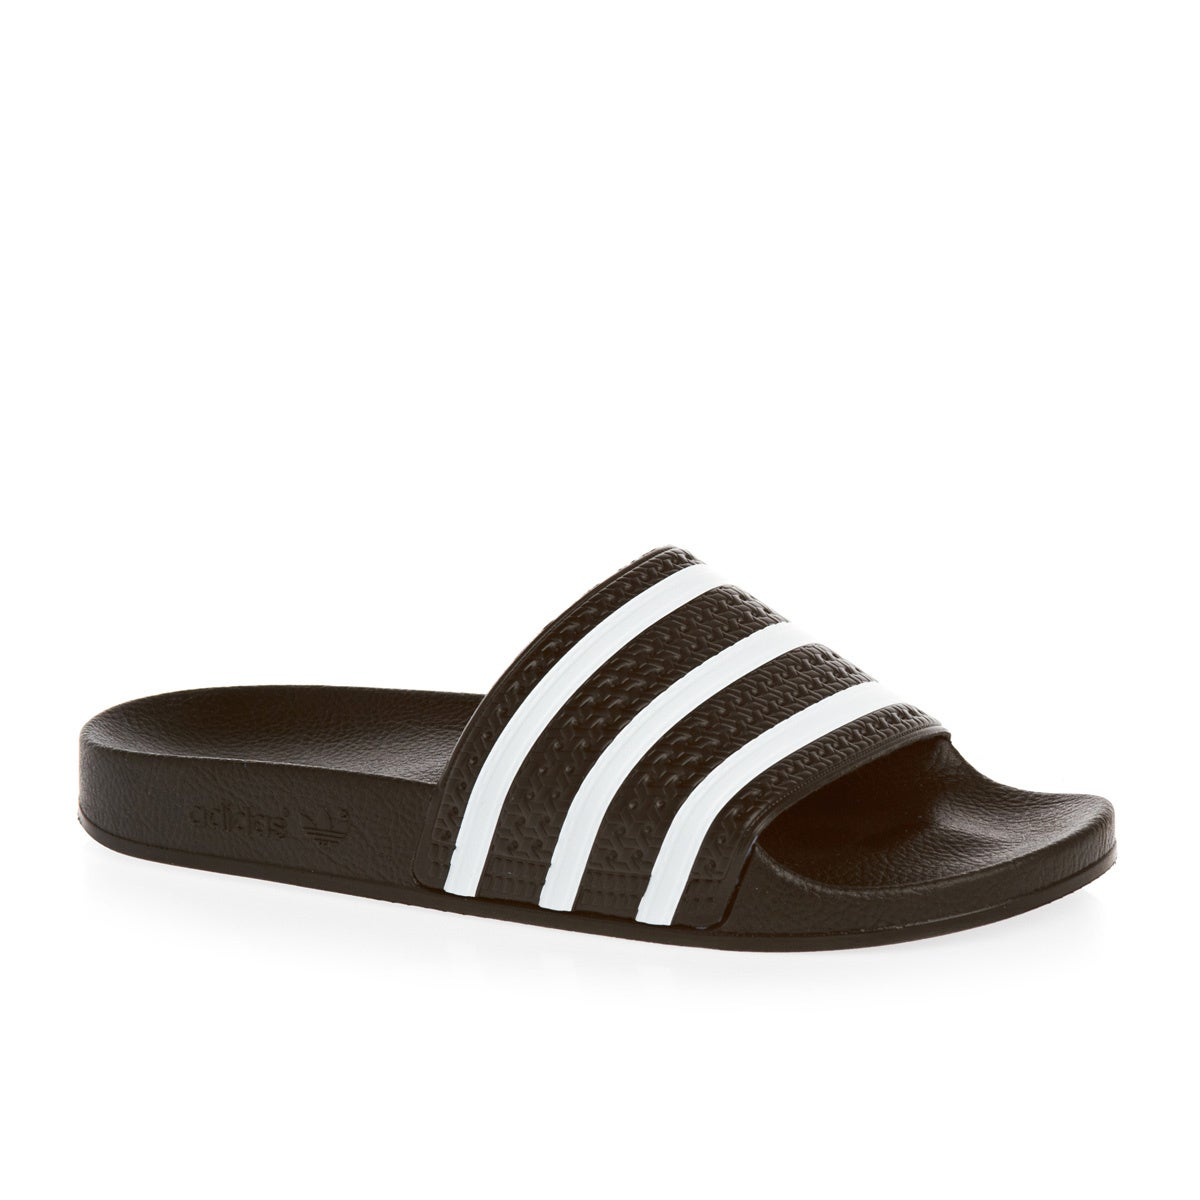 Adidas Originals Adilette Sandals - Black White